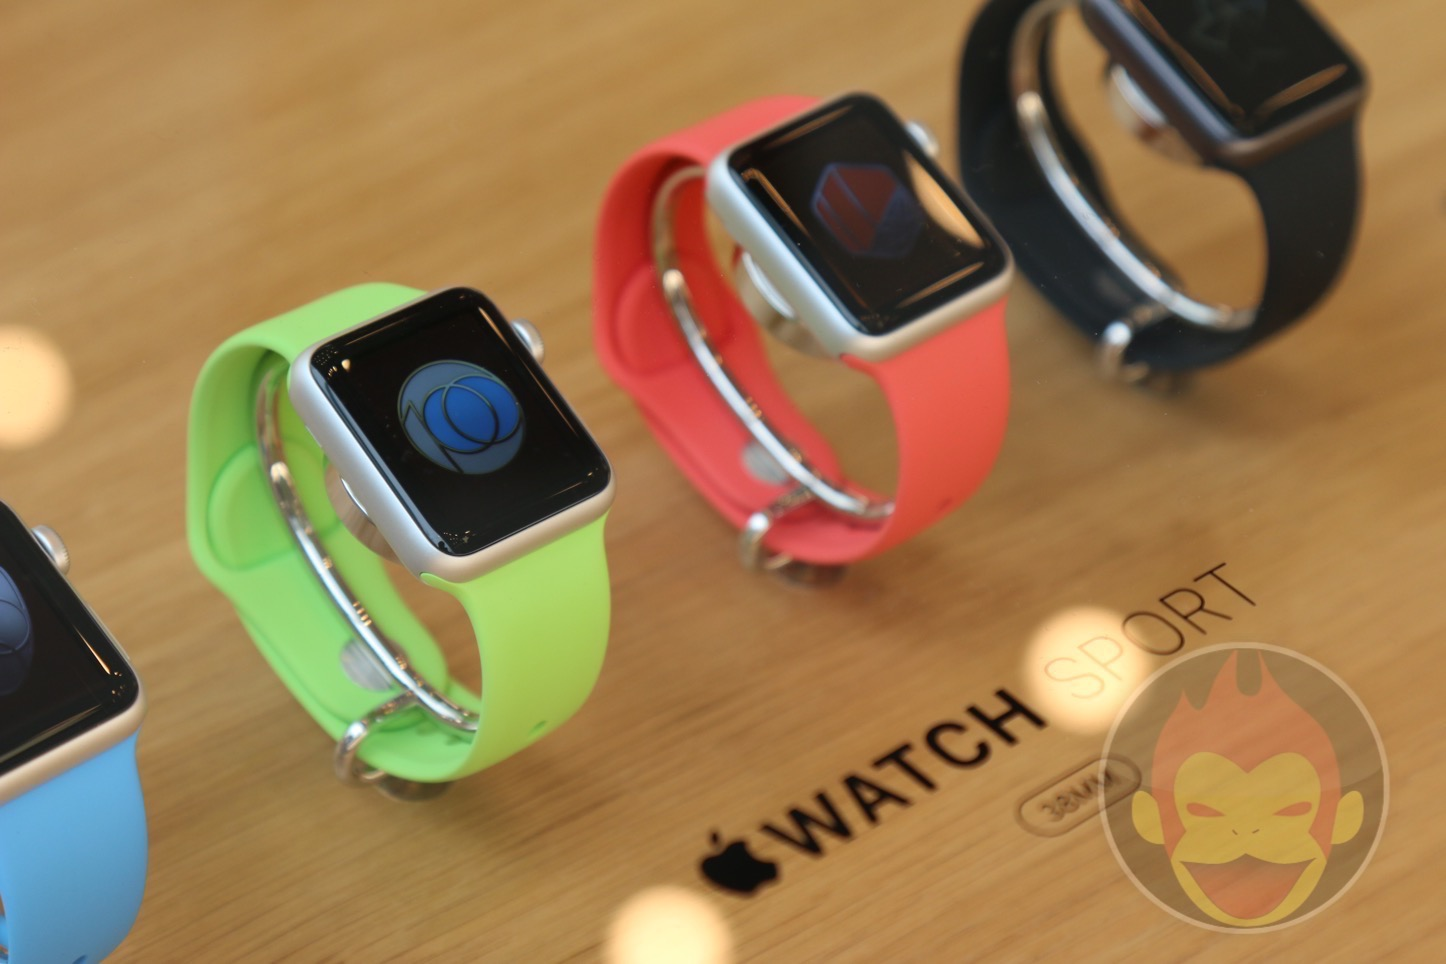 Apple-Watch-Omotesando-10.JPG